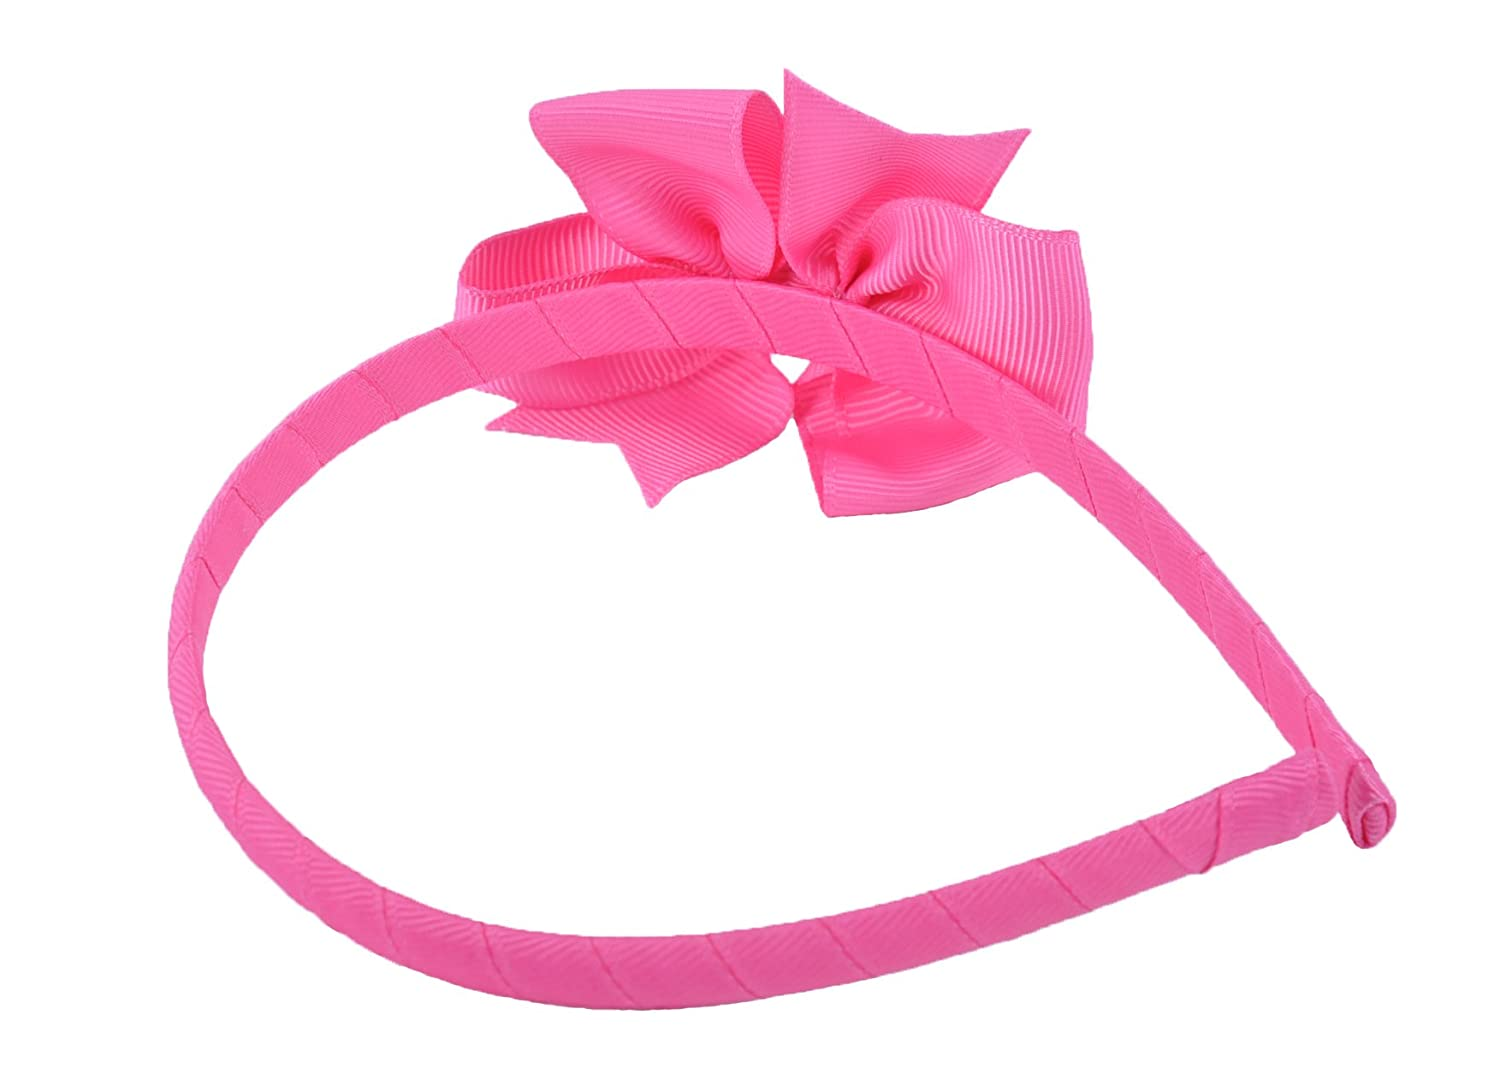 Alice Band with Beautiful Grosgrain hairbow Hair Bow Band Hairband Light Pink